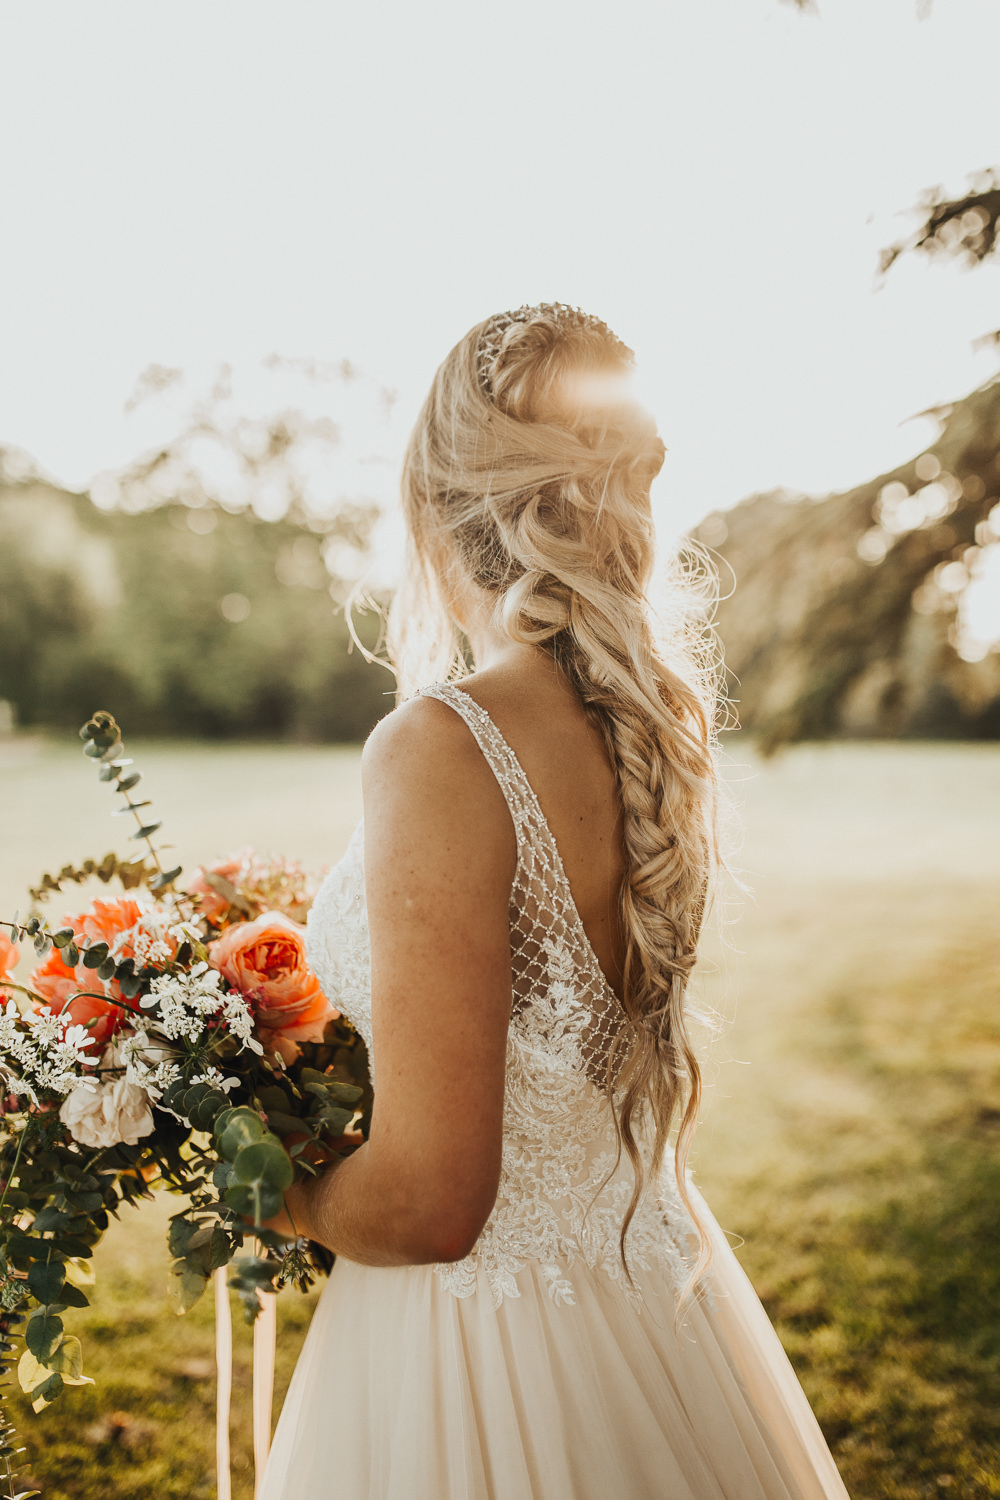 Hair Bride Bridal Long Style Up Do Plait Braid Curls Waves Stubton Hall Wedding Darina Stoda Photography